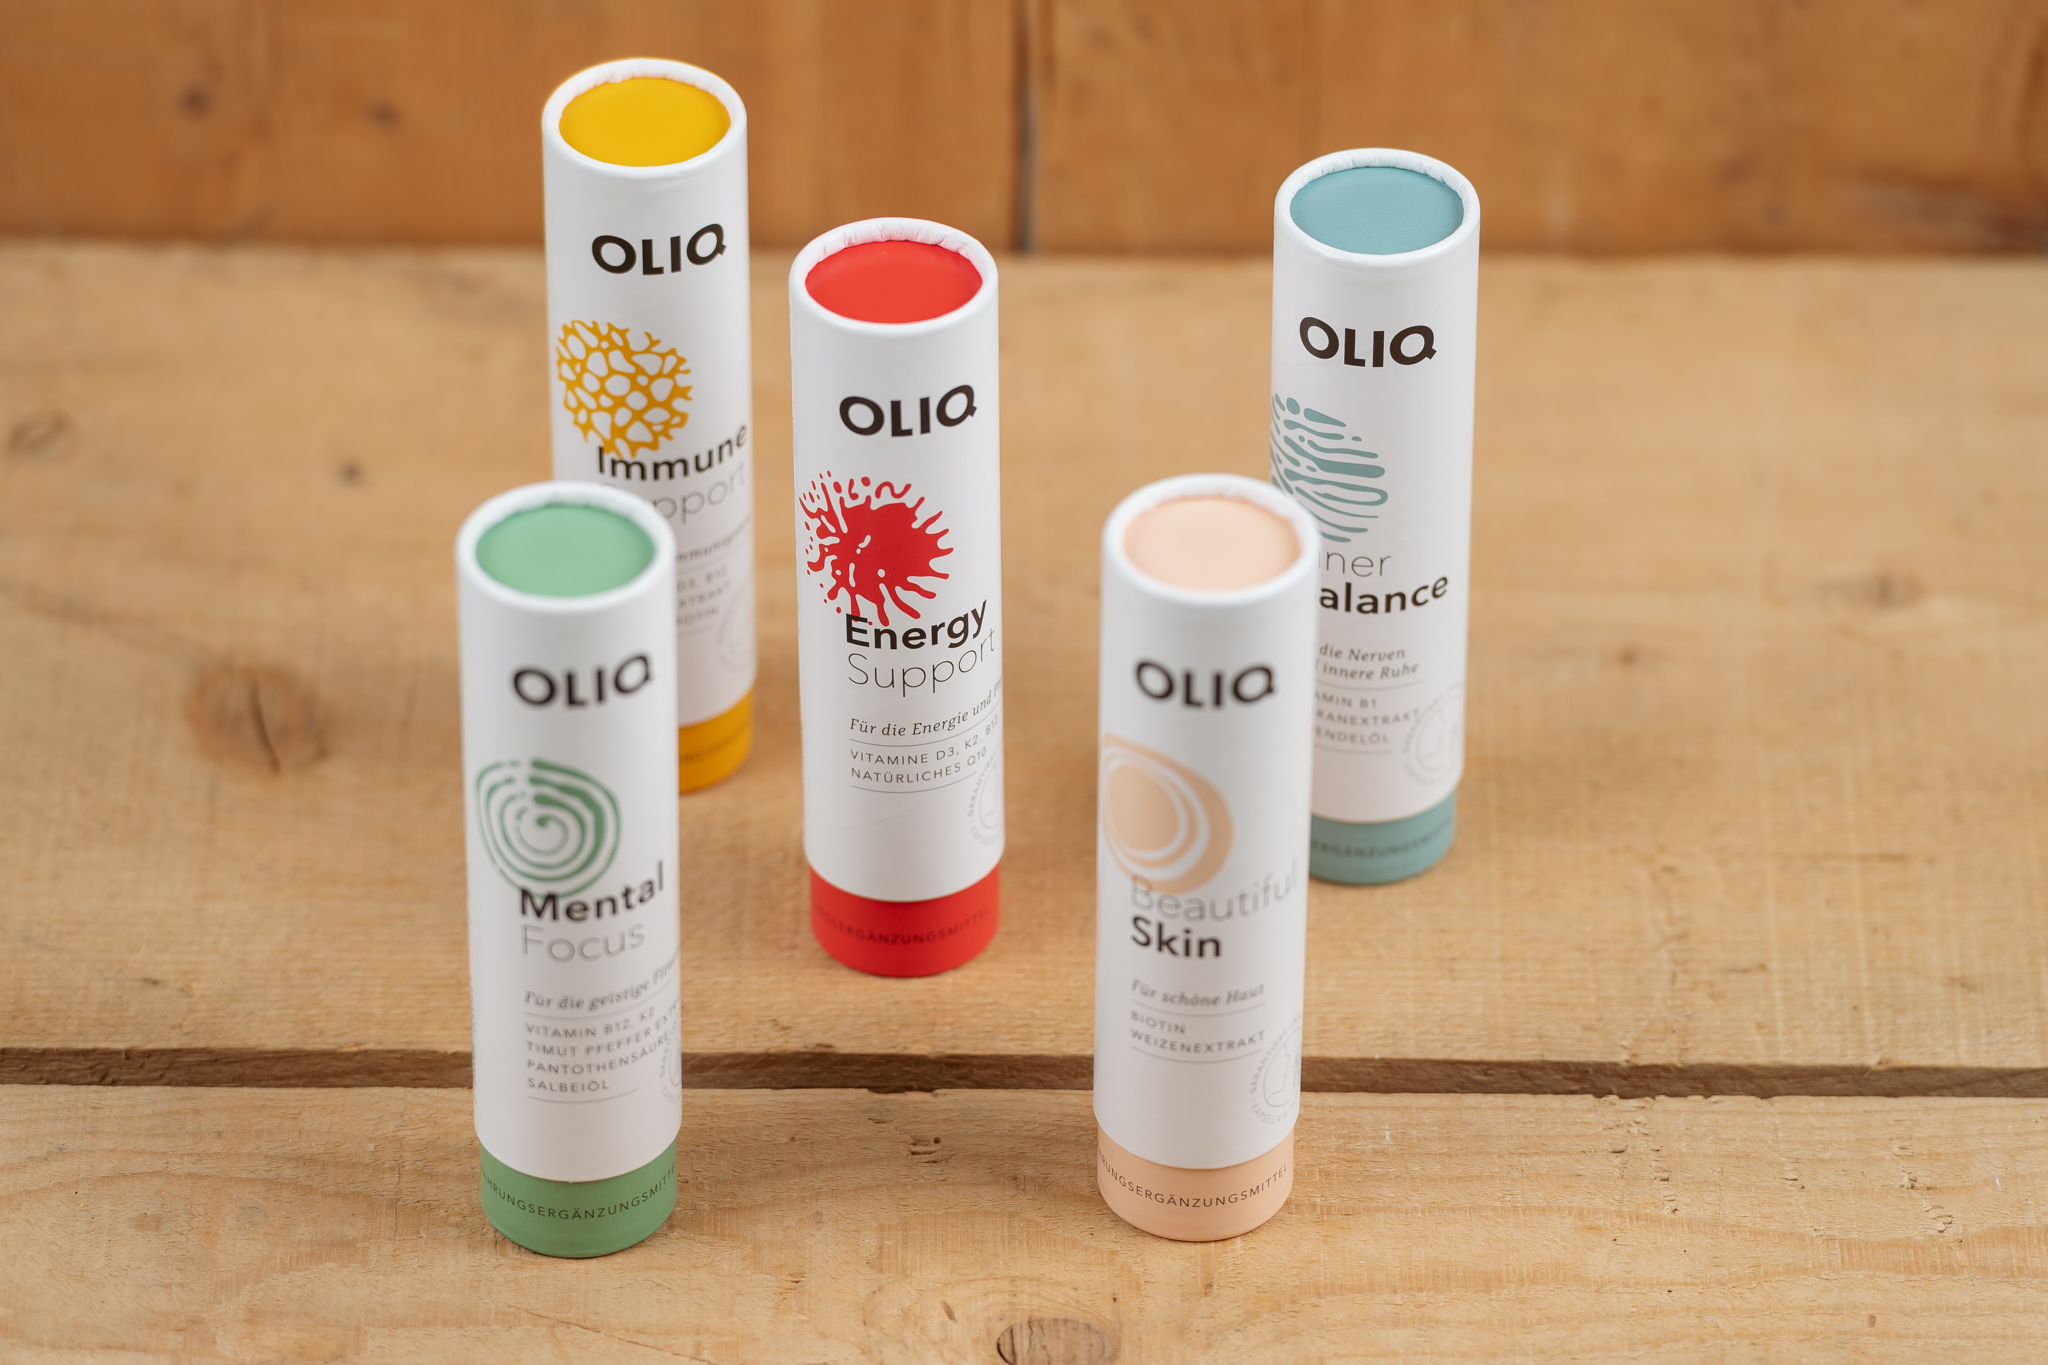 Oliq Vitamin sprays